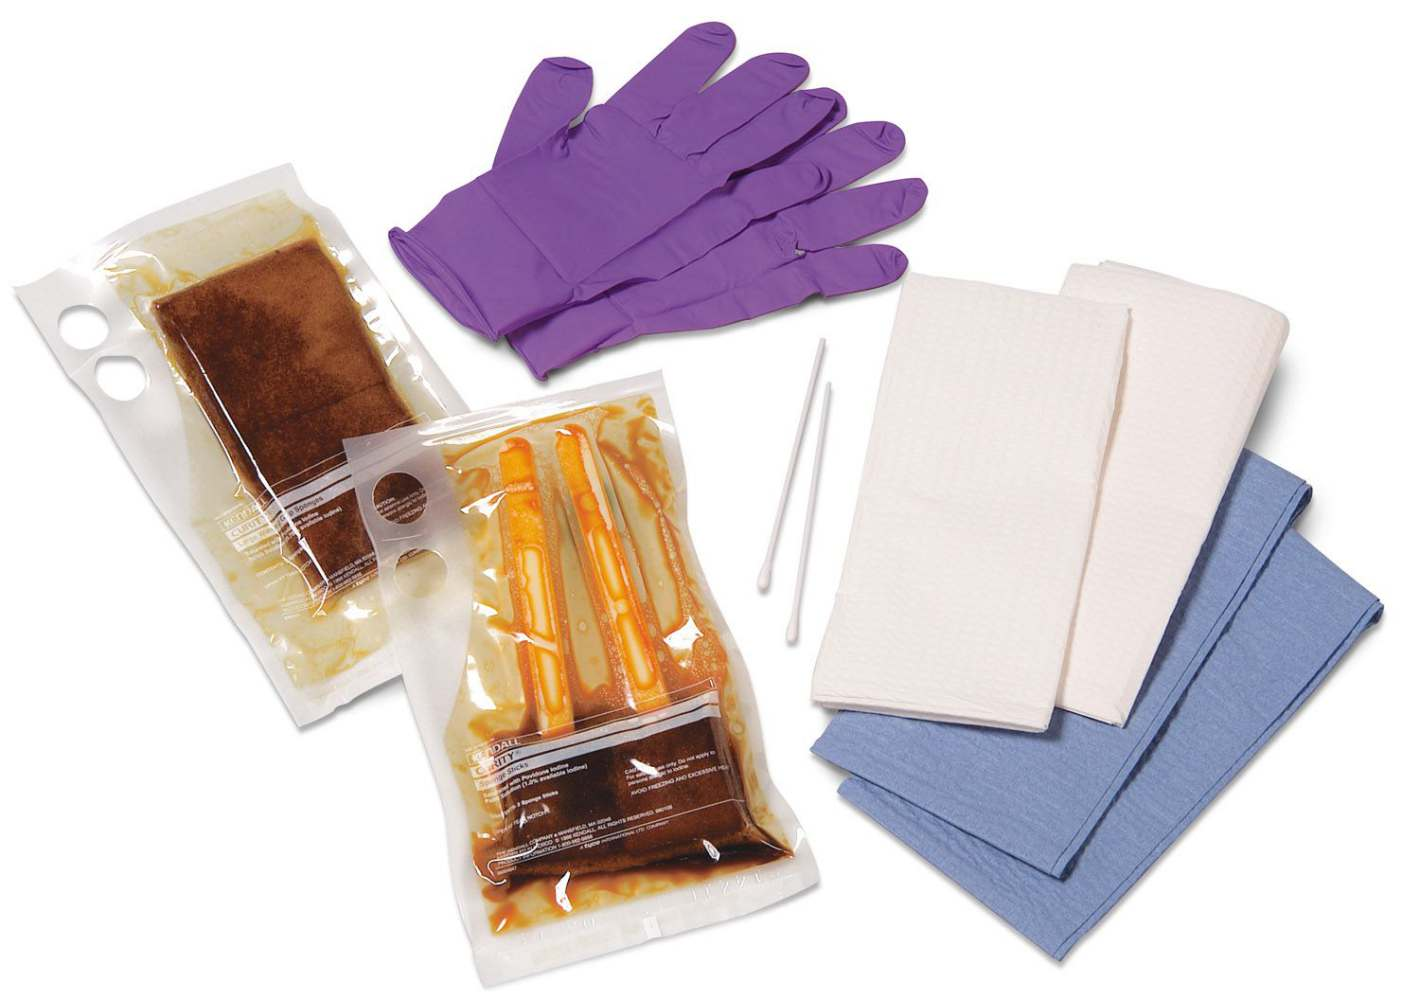 Curity Skin Scrub Sponge Stick - Pack, Skin Prep, Gloves, 2 Sponges, Pvp, Box of 20 - Model 41535